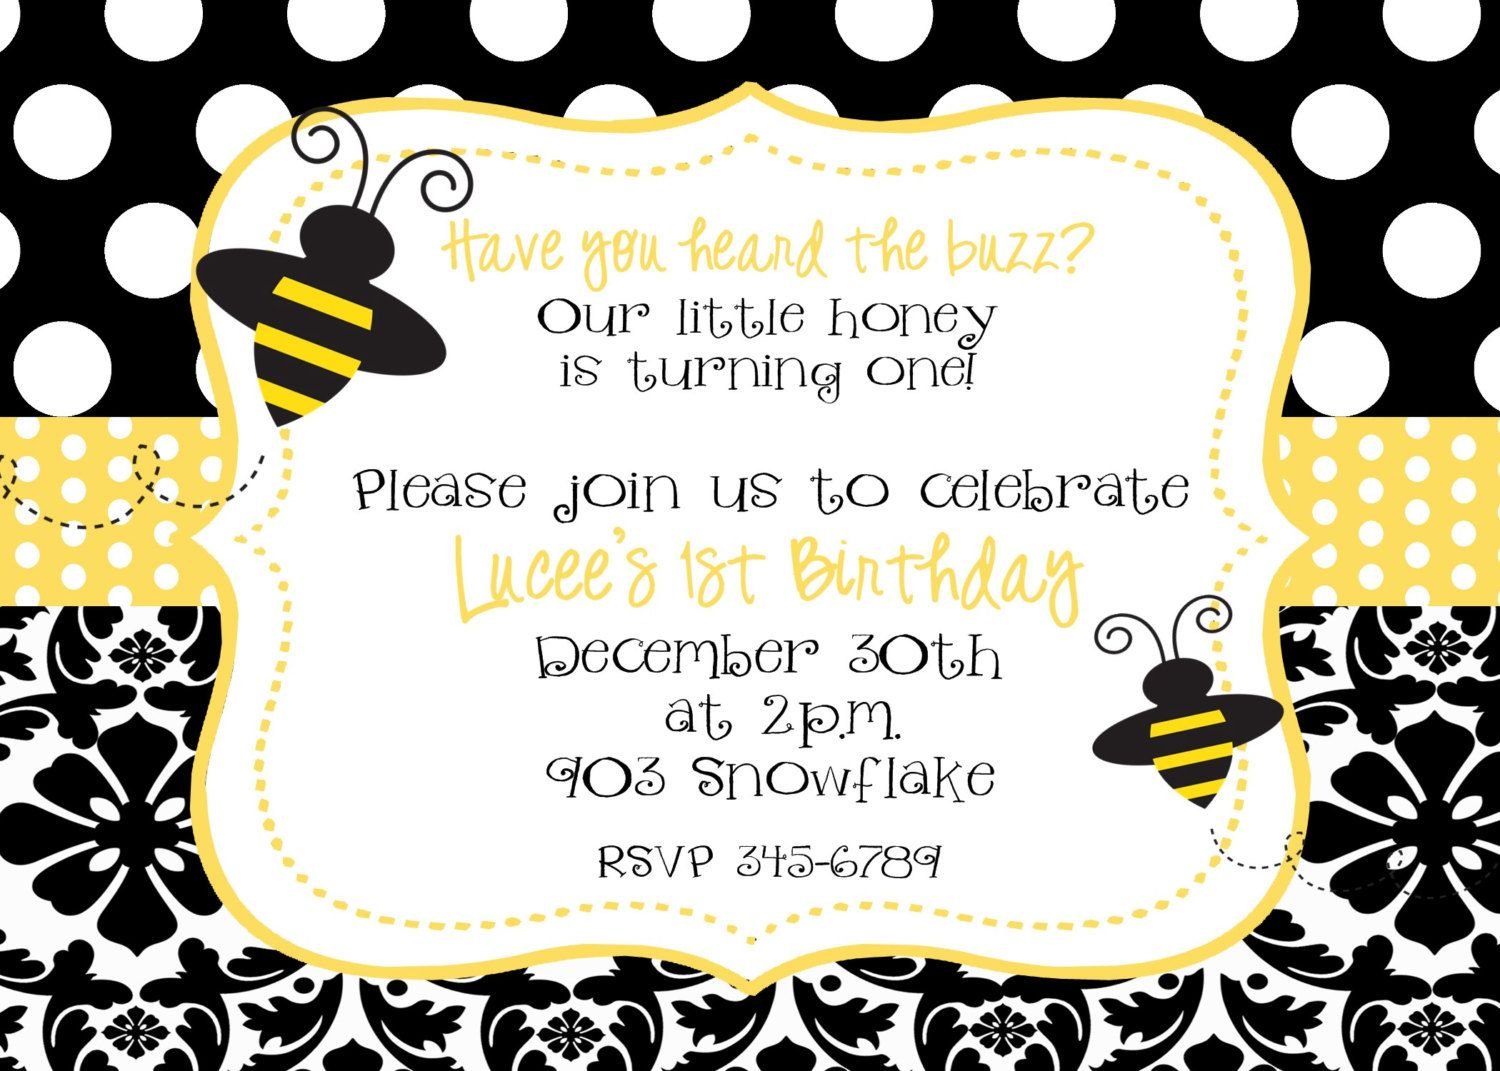 Bumble bee birthday party or baby shower invitation digital or bumble bee birthday party or baby shower invitation digital or printable file 950 via filmwisefo Images